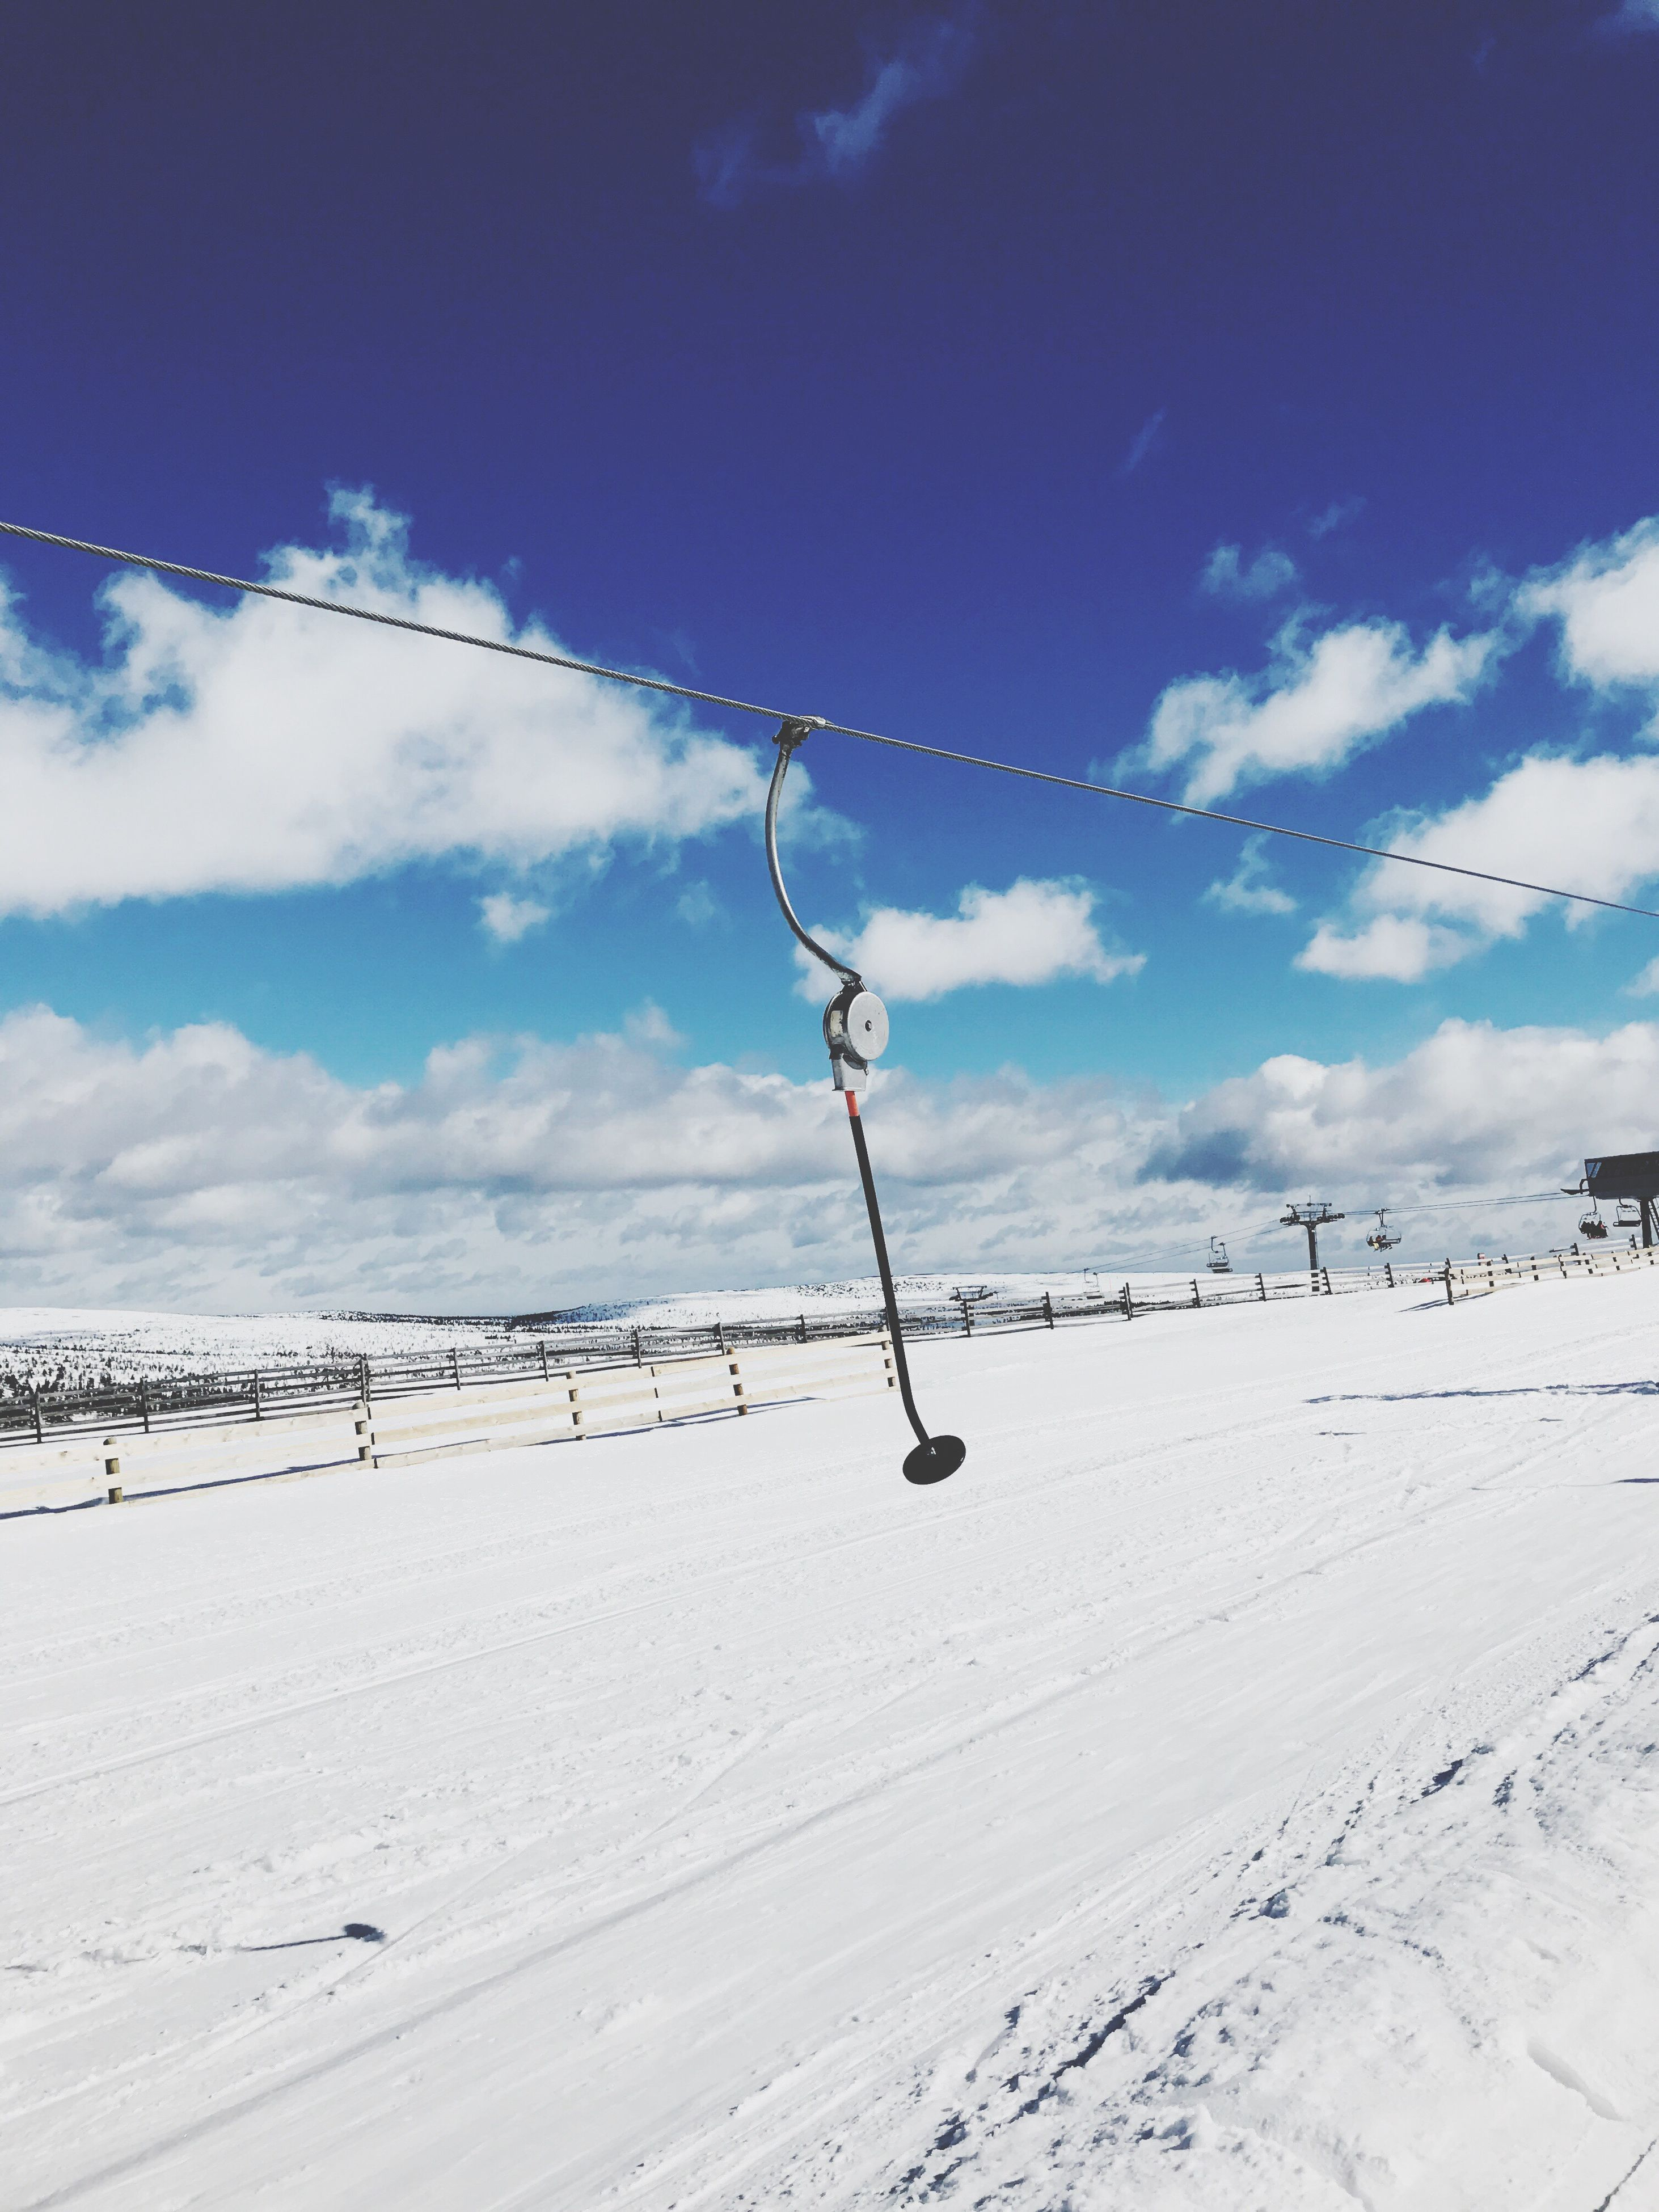 cold temperature, snow, winter, sky, nature, no people, outdoors, day, cloud - sky, beauty in nature, scenics, powder snow, ski lift